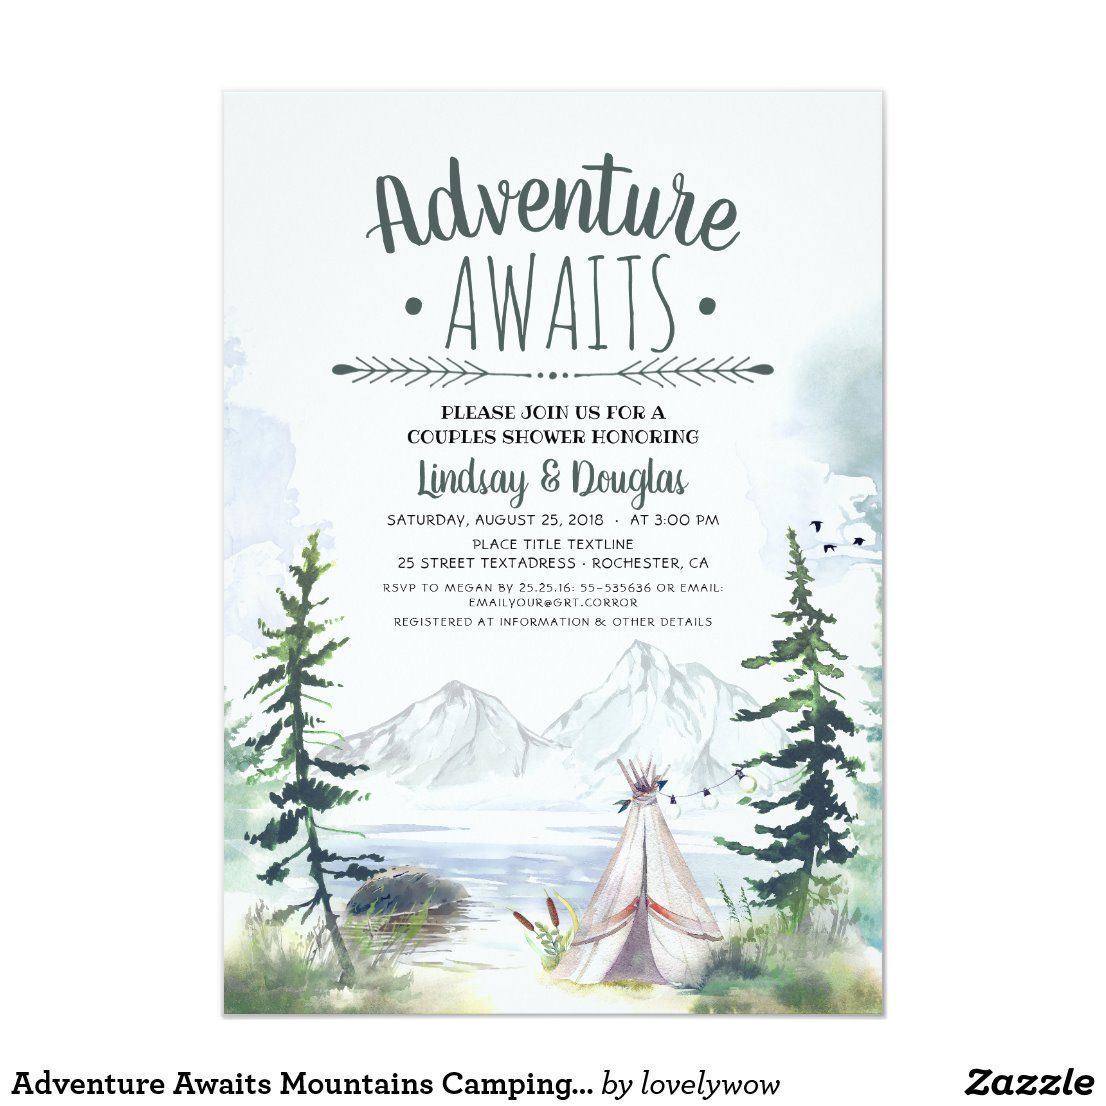 Adventure Awaits Mountains Camping Couples Shower Invitation   Zazzle.com#adventure #awaits #camping #couples #invitation #mountains #shower #zazzlecom